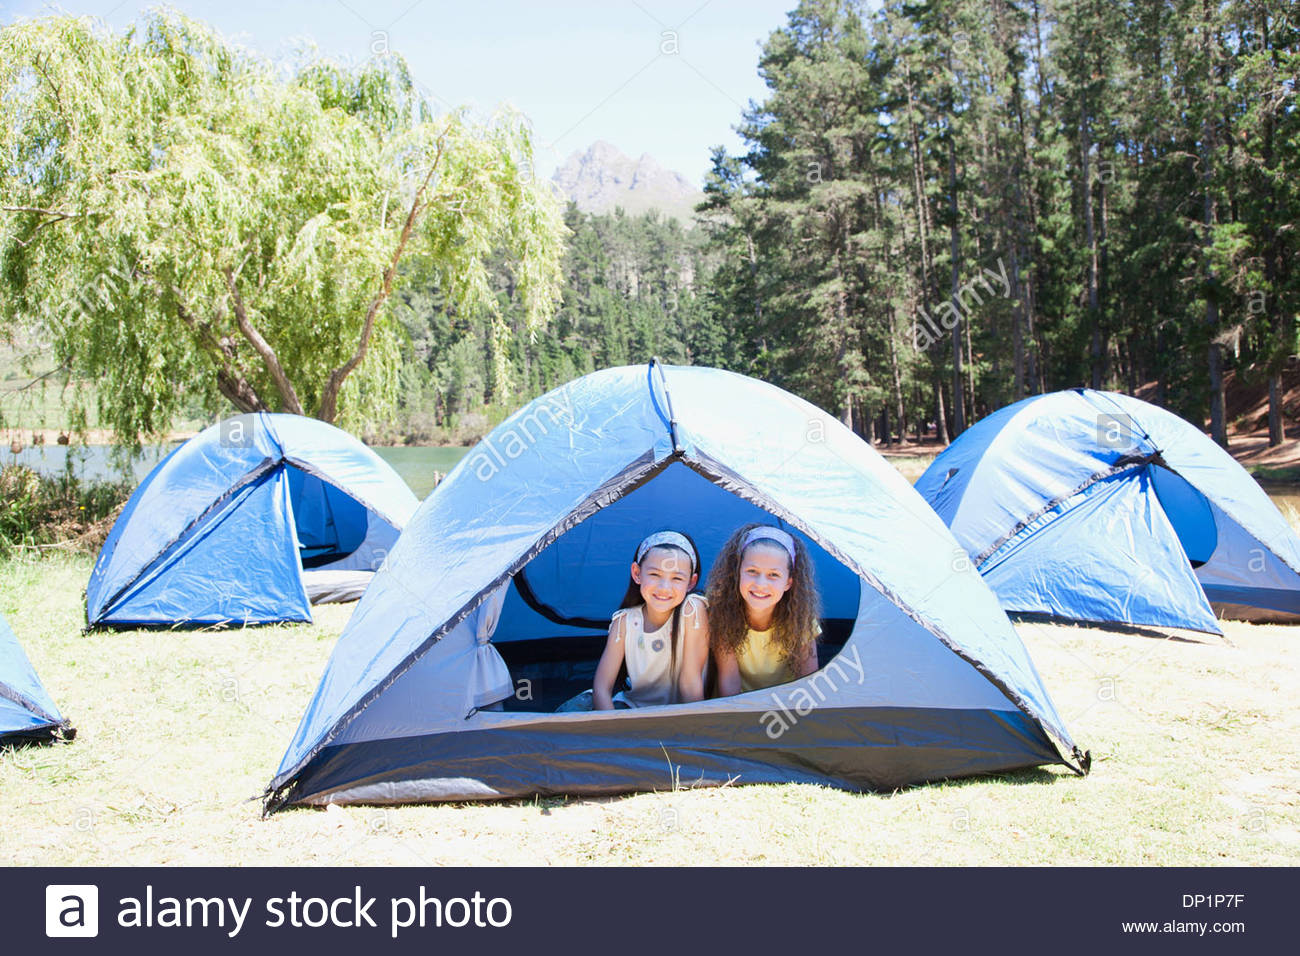 Girls in tent - Stock Image